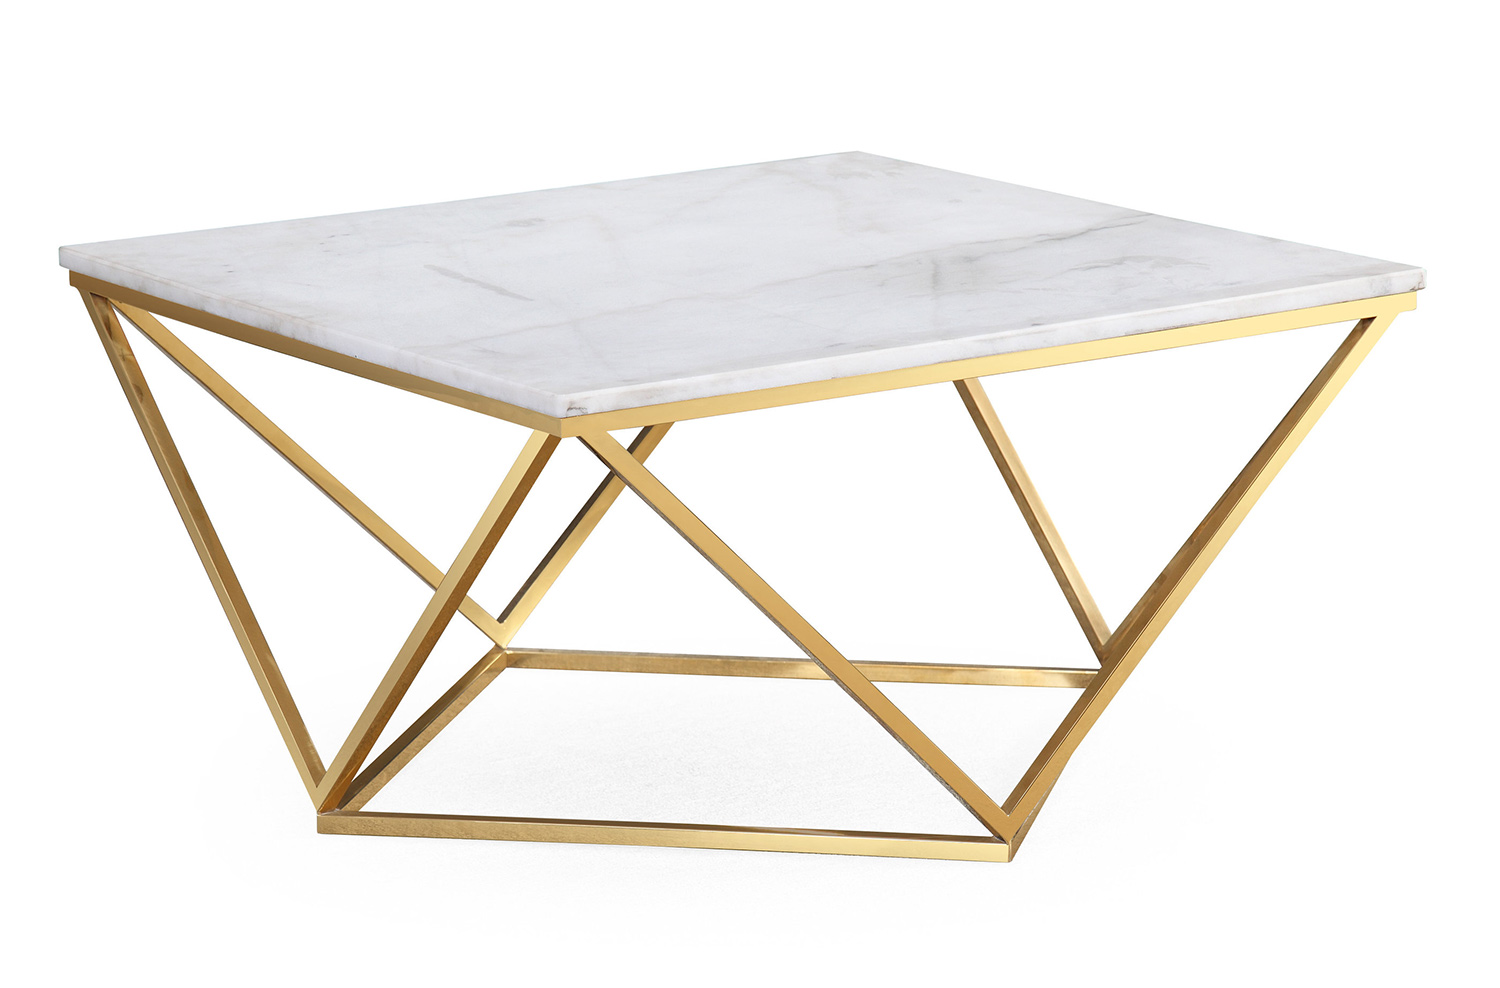 TOV Furniture Leopold Cocktail Table - White/Gold